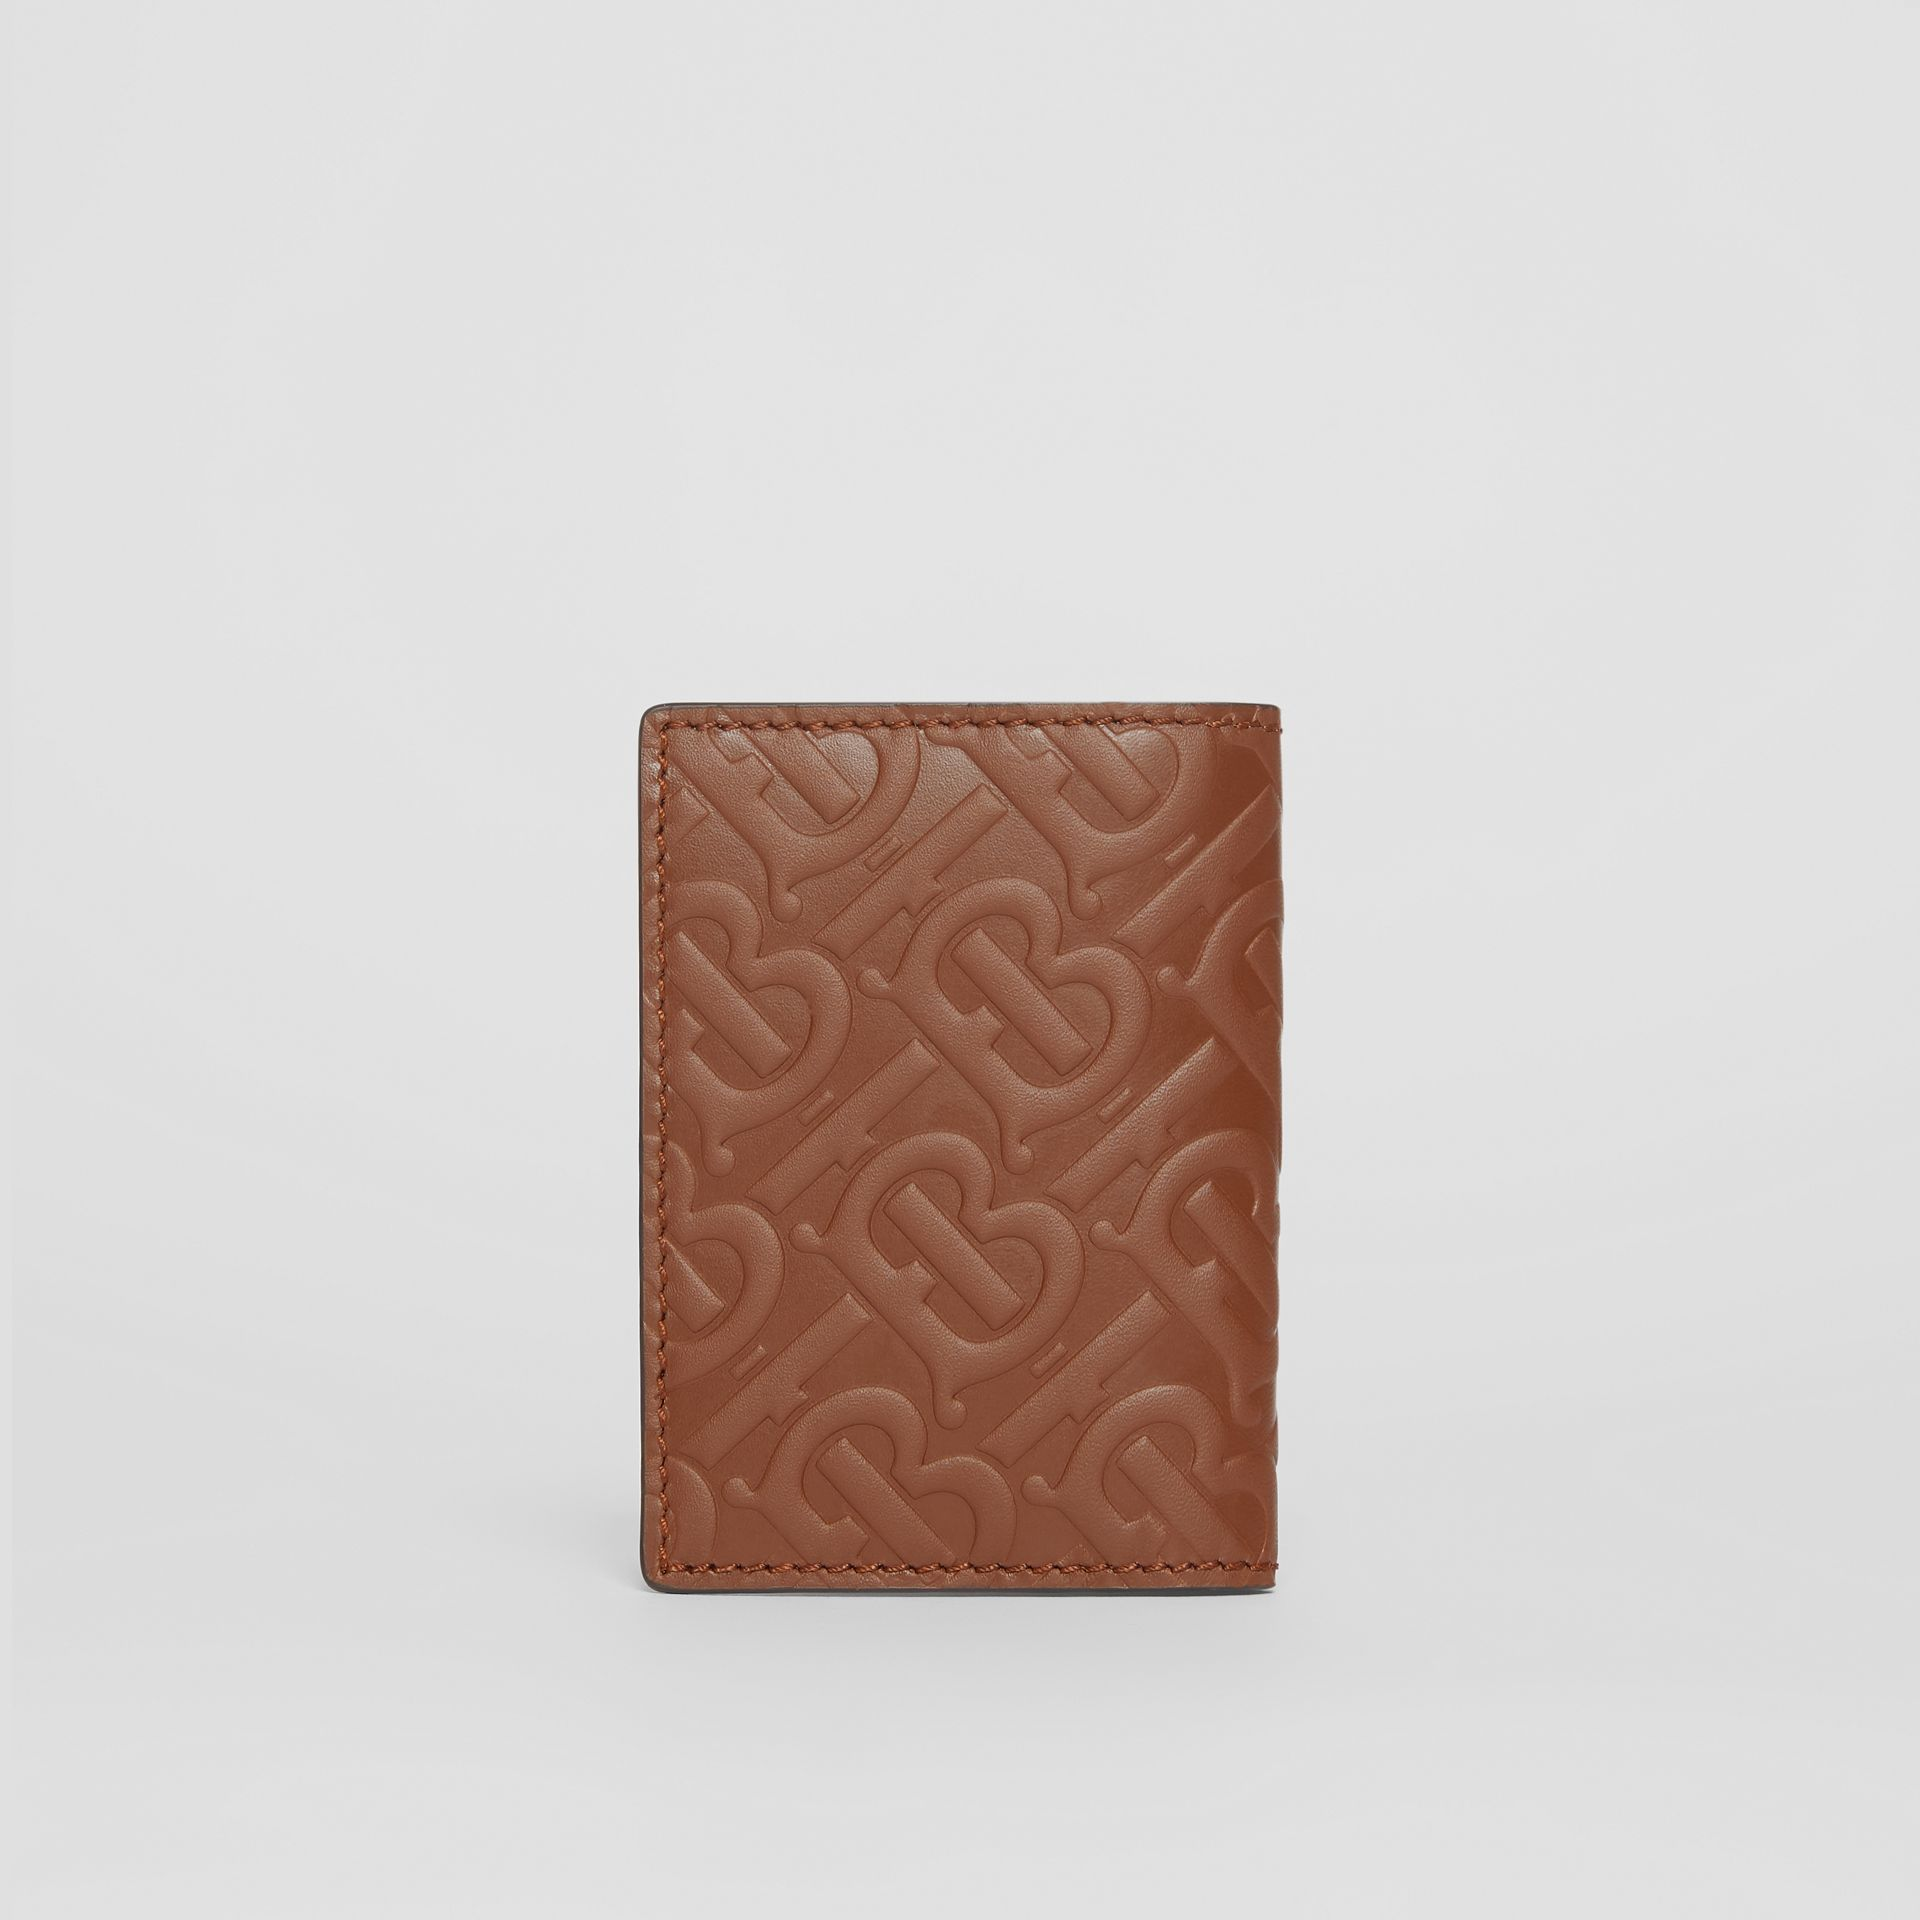 Monogram Leather Bifold Card Case in Dark Tan - Men | Burberry United Kingdom - gallery image 4